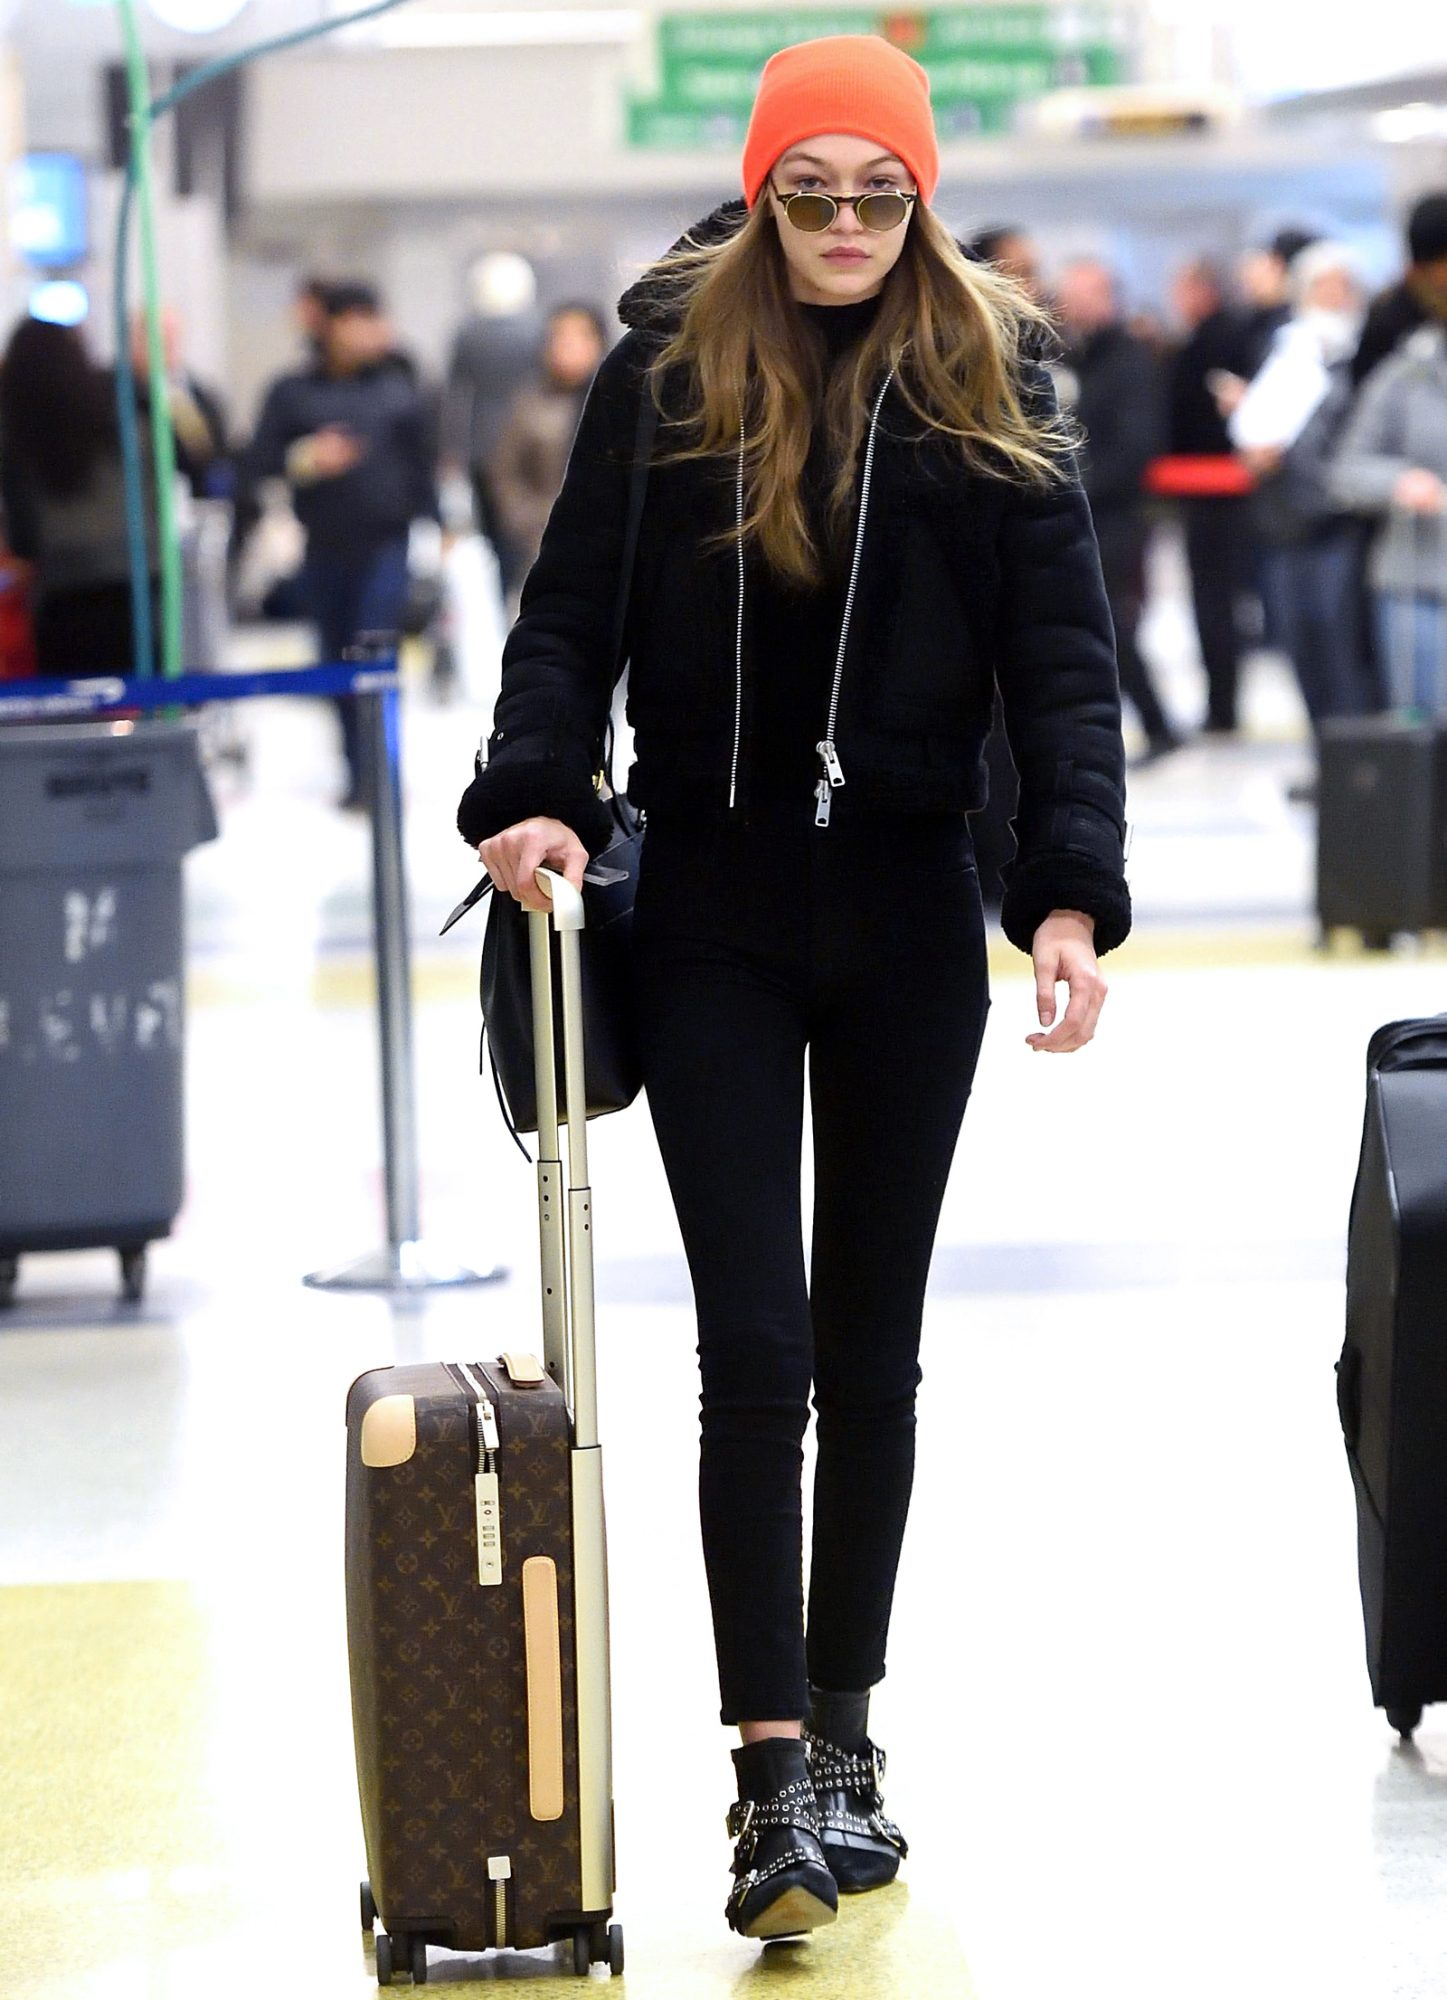 Celebrities' Photos at Airport | Celebrity Airport Outfits ...